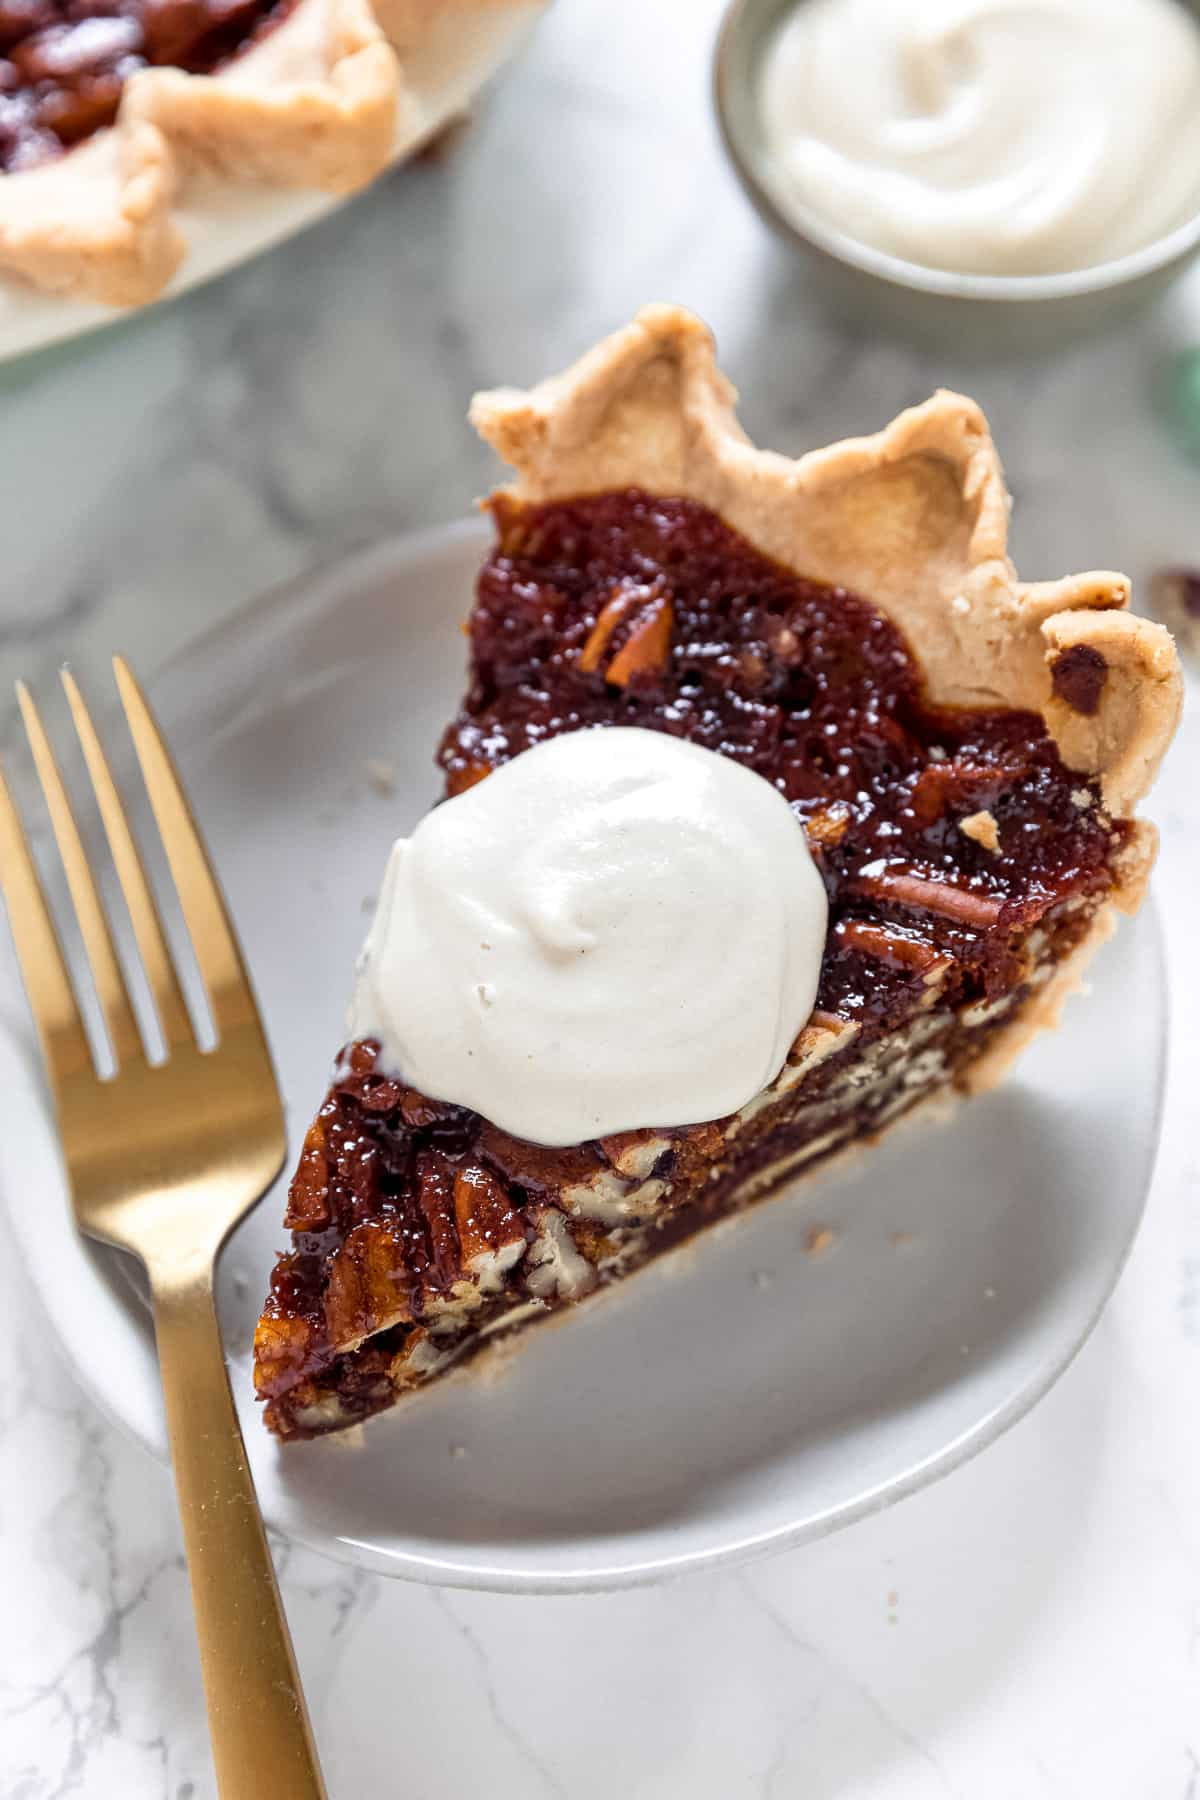 slice of vegan pecan pie on a plate with a dollop of whipped cream on top